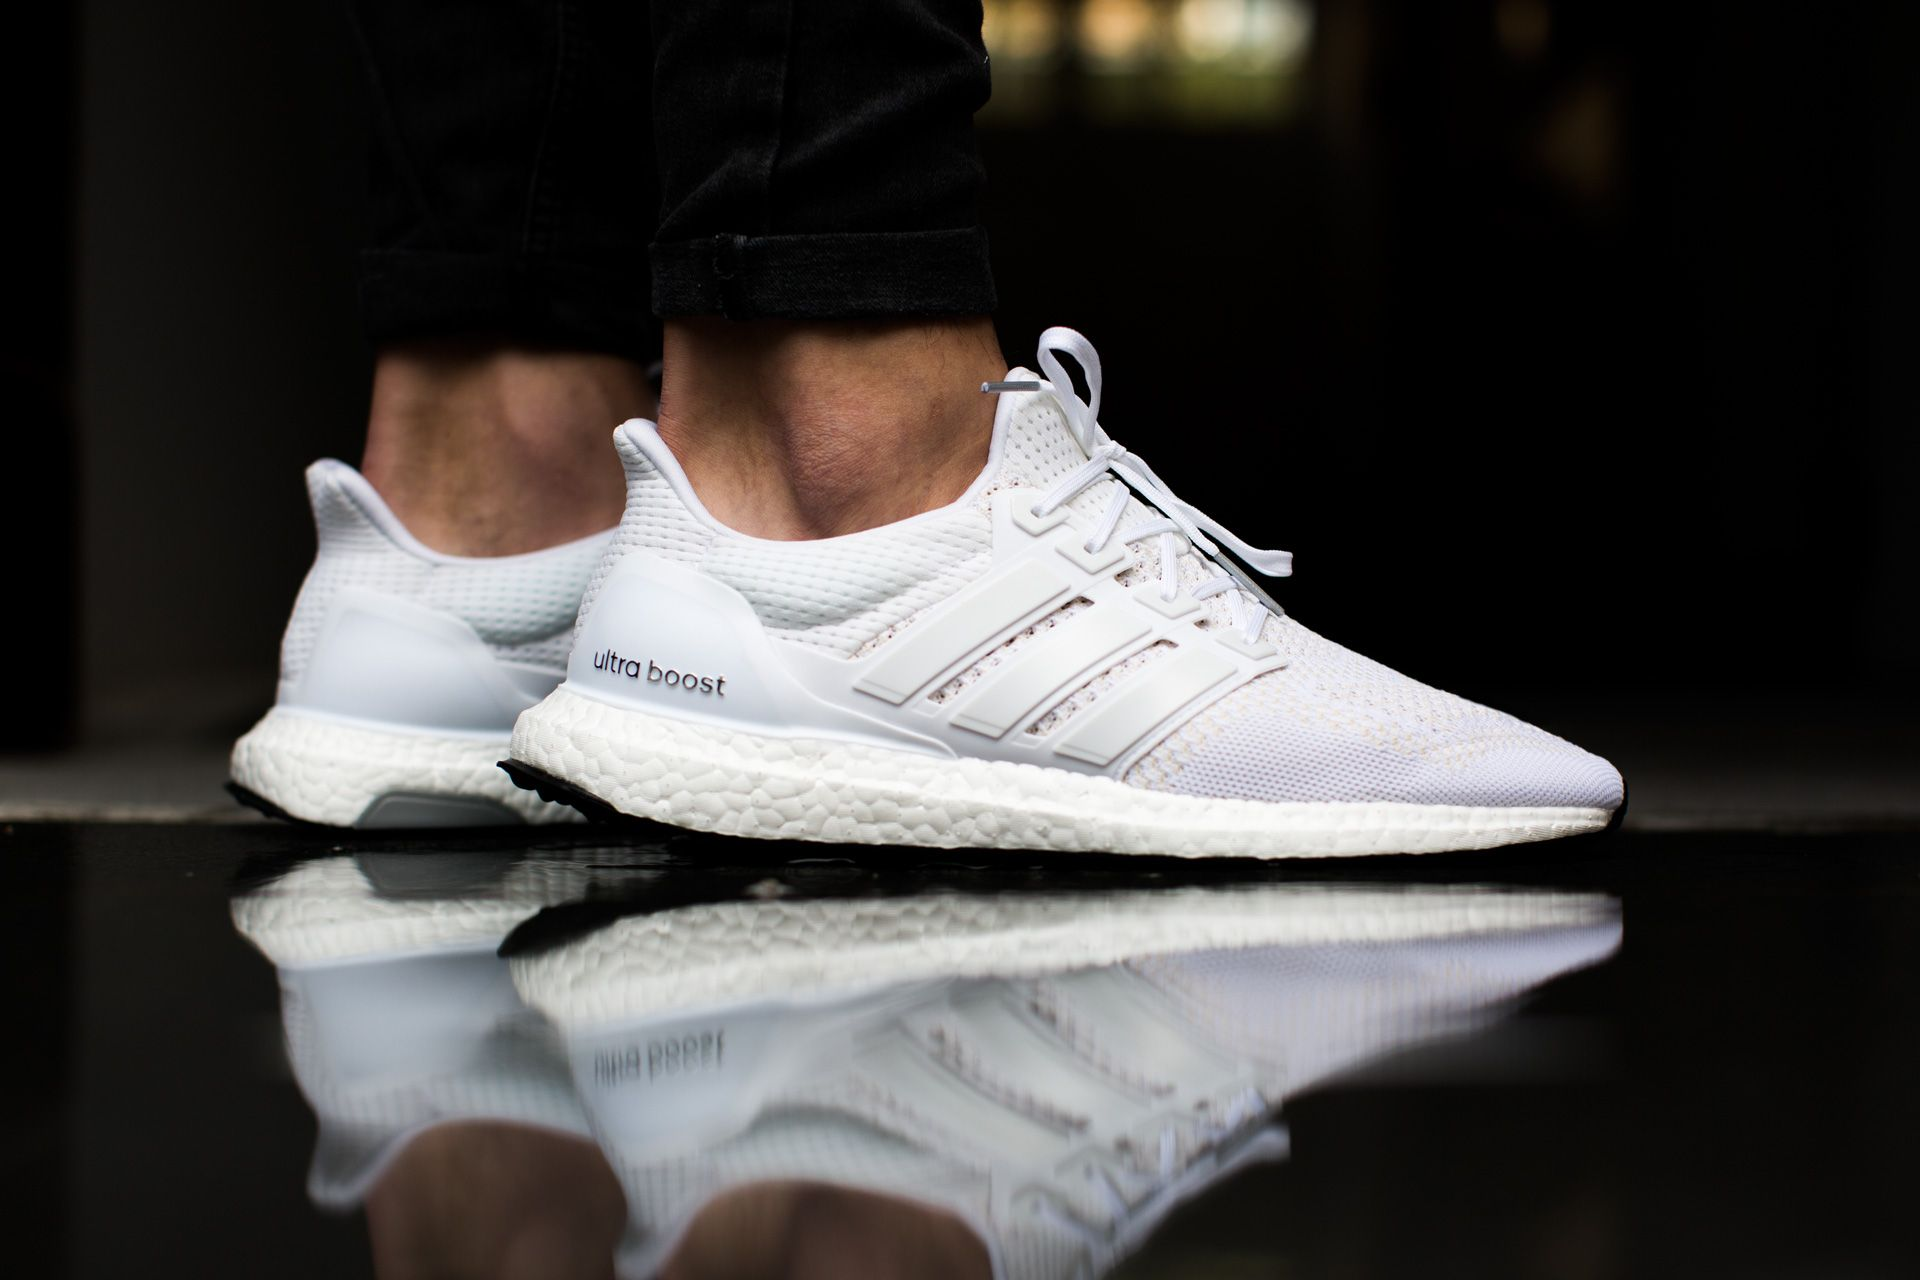 huge selection of f0d29 23baa adidas ultra boost www.tint-footwear.com adidas ultra boost all white  everything sneaker hype tint footwear studio munich